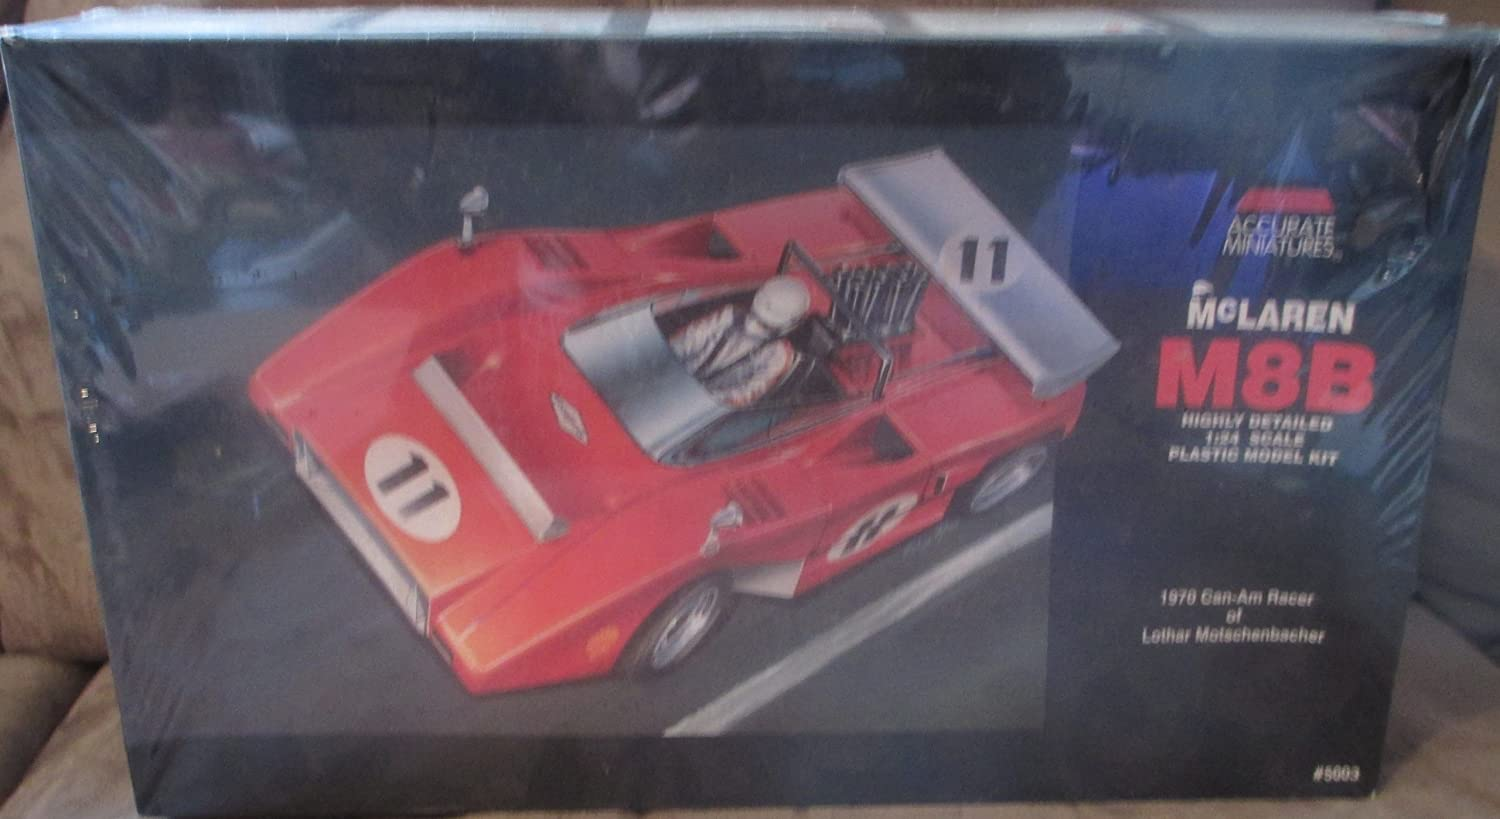 #5003 Accurate Miniatures McLaren M8B 1970 Can-Am Racer of Lother Motschenbacher 1/24 Scale Plastic Model Car Kit,Needs B00C811ALC